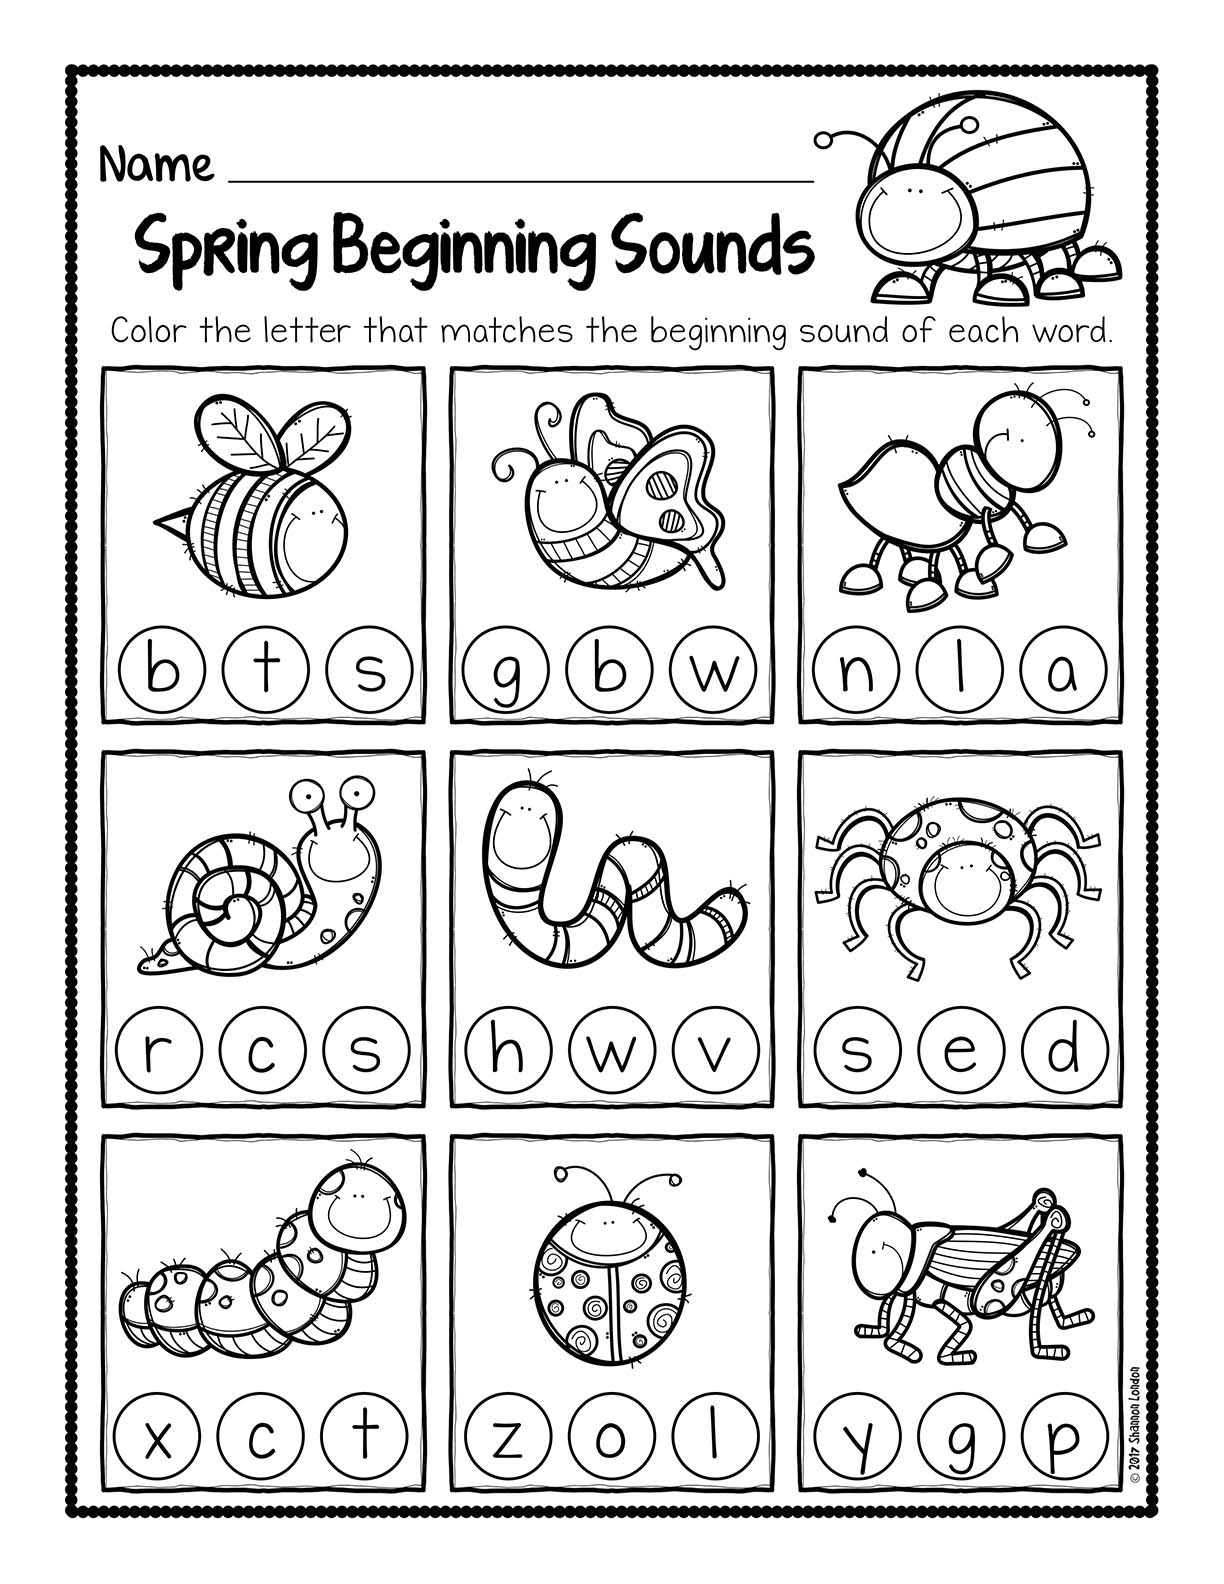 Spring Beginning Sound Worksheets 001 The Super Teacher